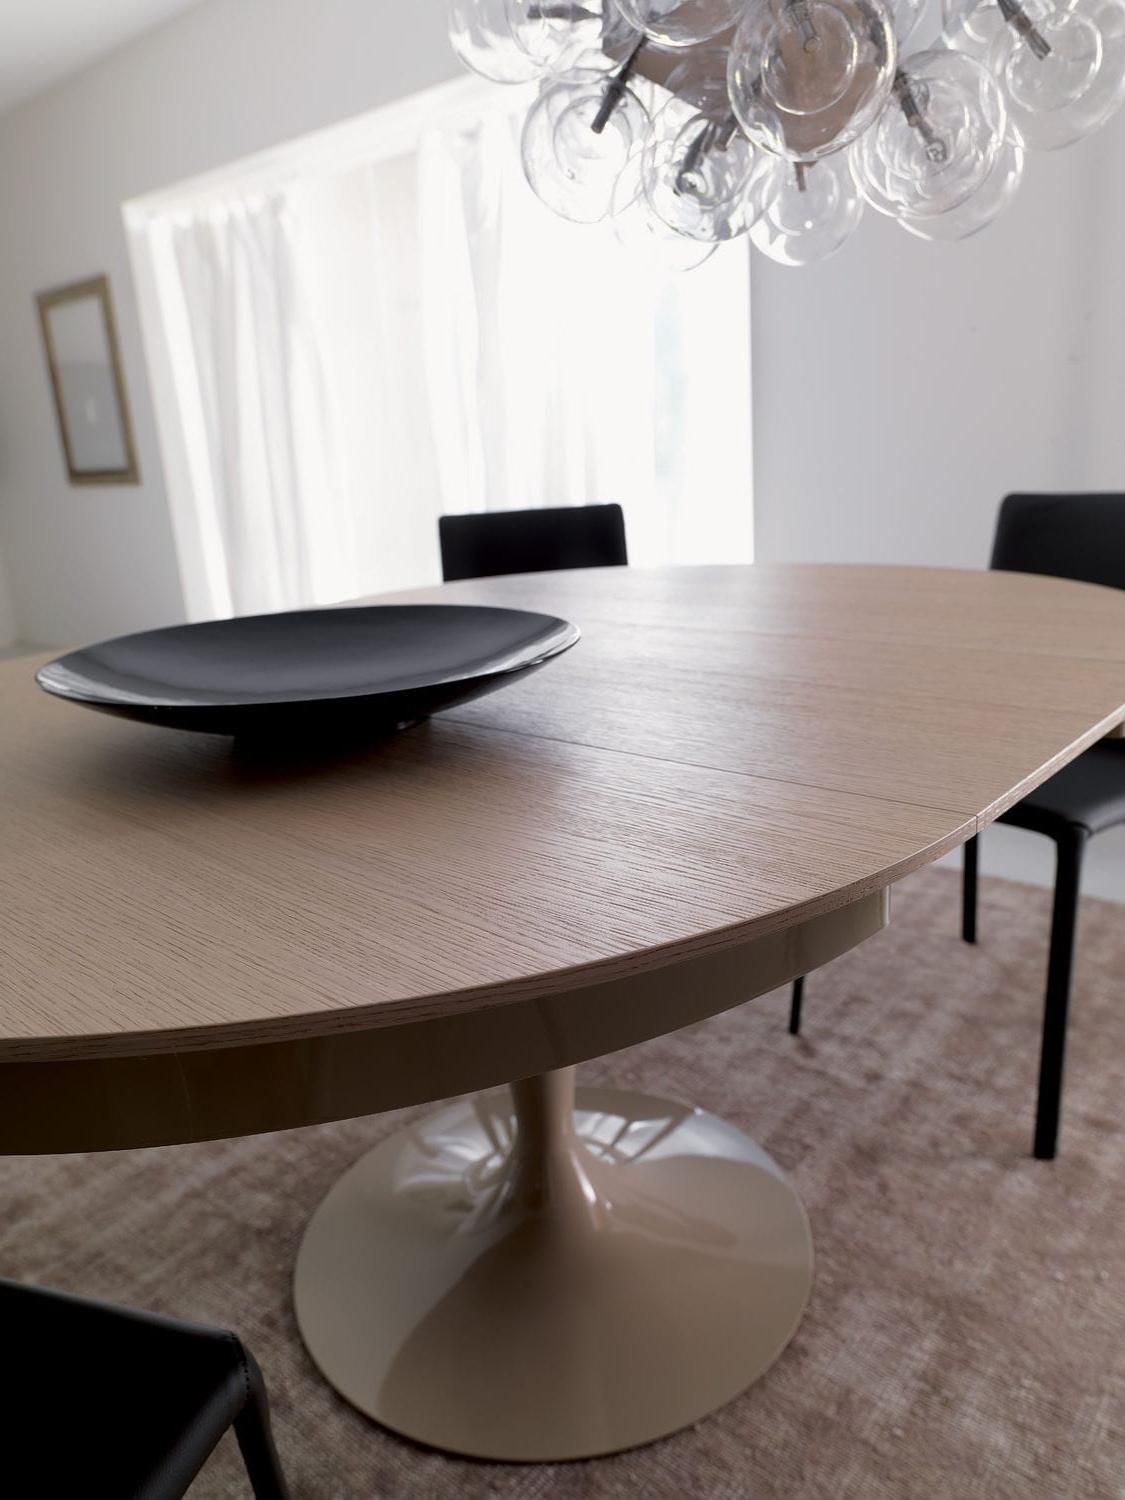 Most Recent Eclipse Dining Tables With Regard To Contemporary Dining Table / Wooden / Metal / Round – Eclipse (Gallery 19 of 30)